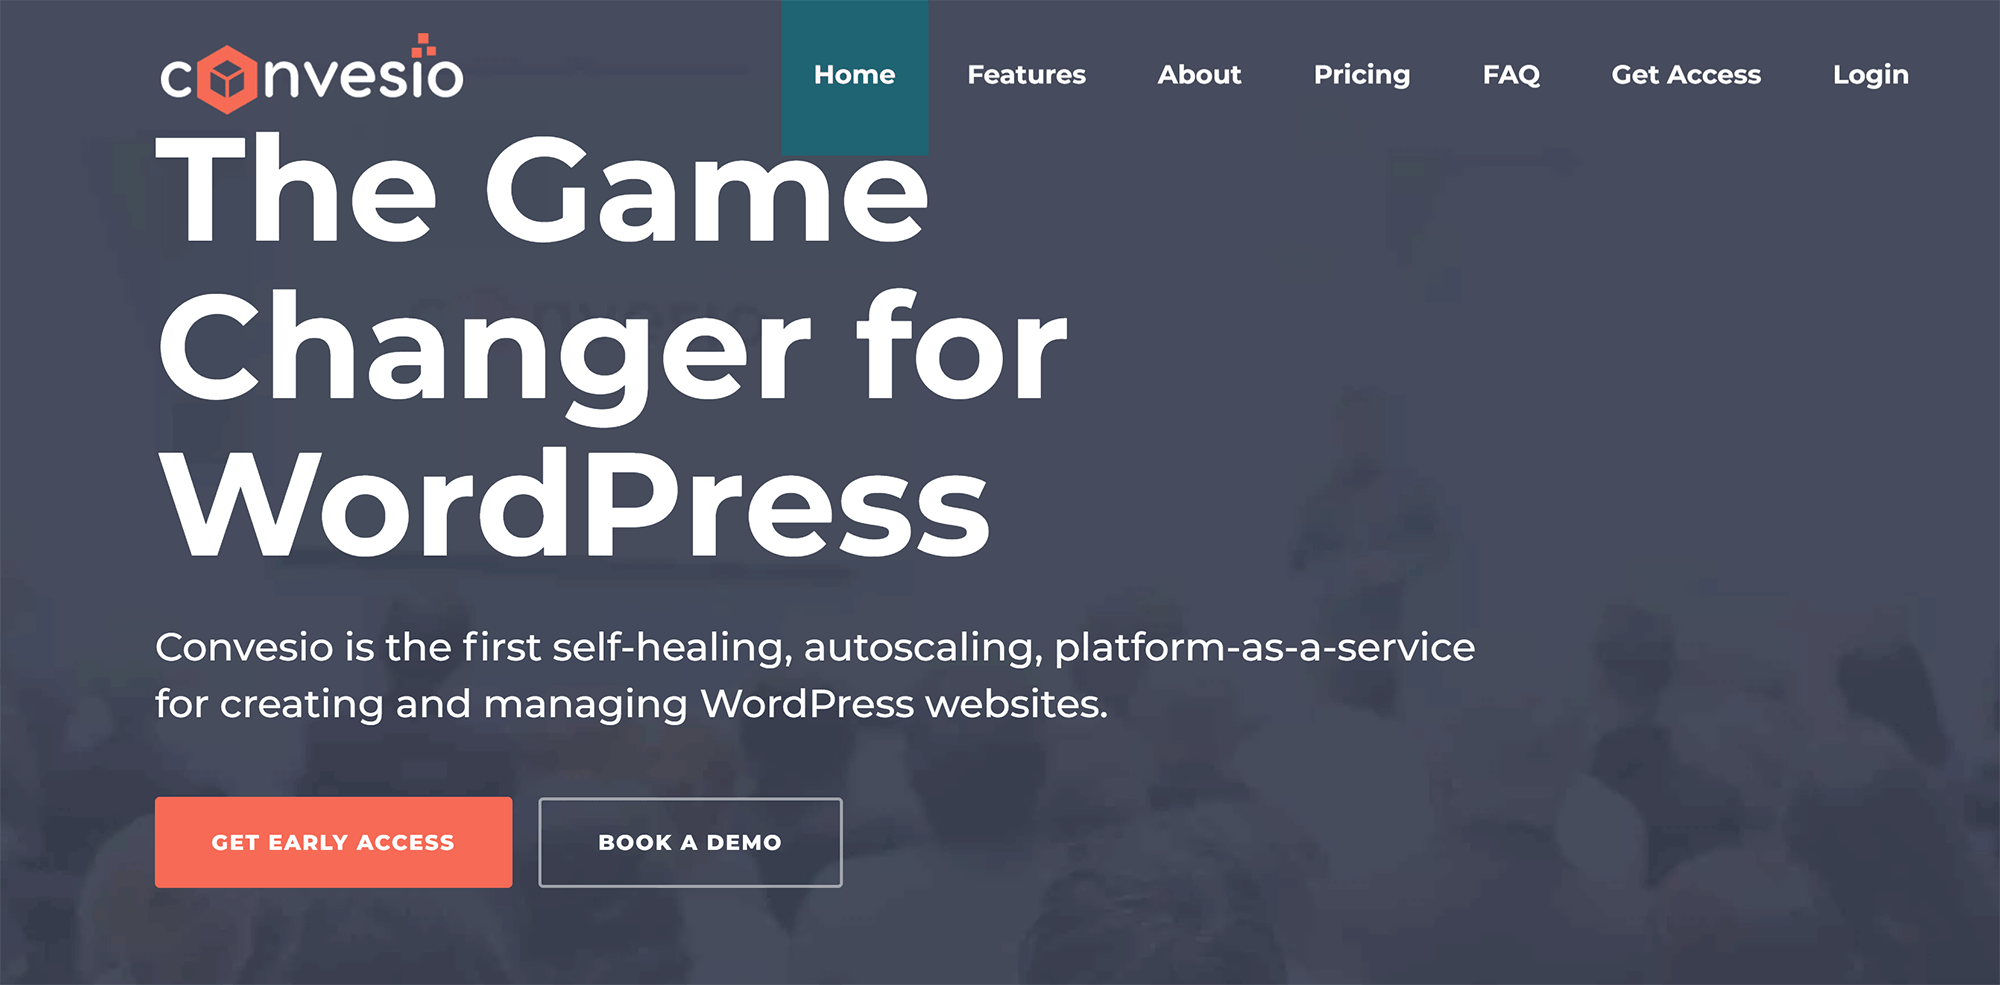 Convesio is a game changer for WordPress